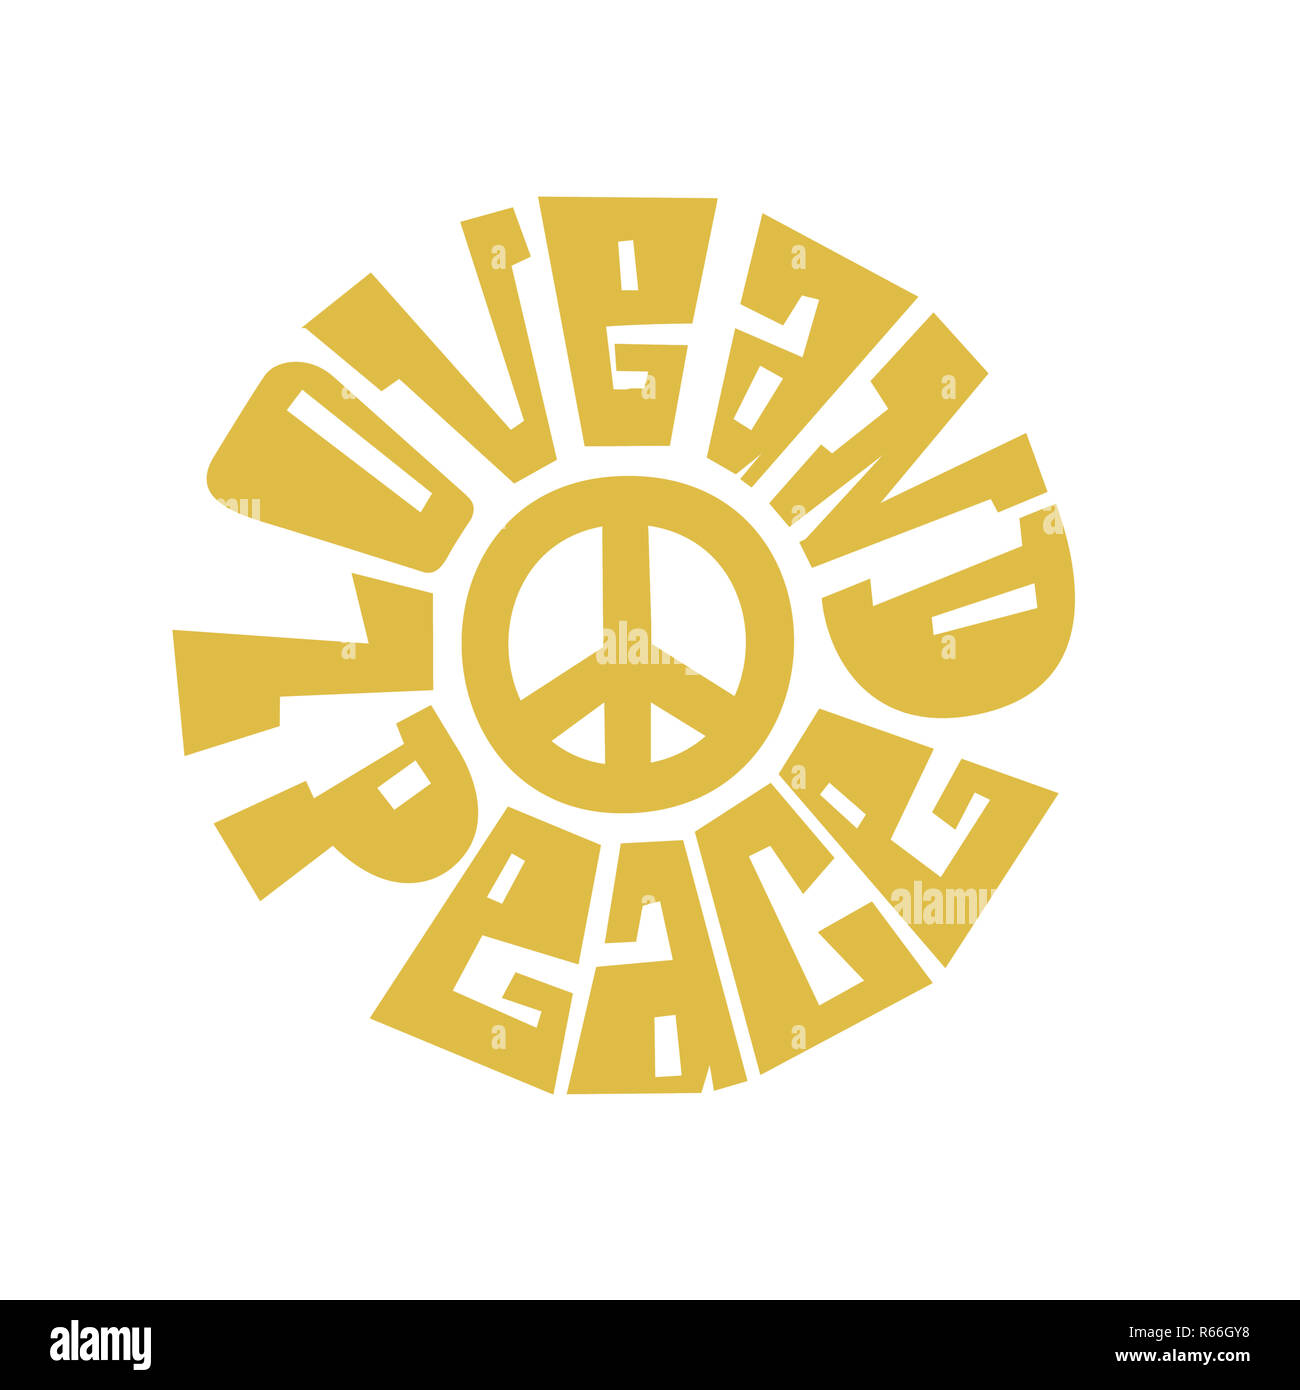 Love and Peace .jpg - R66GYH - Stock Image